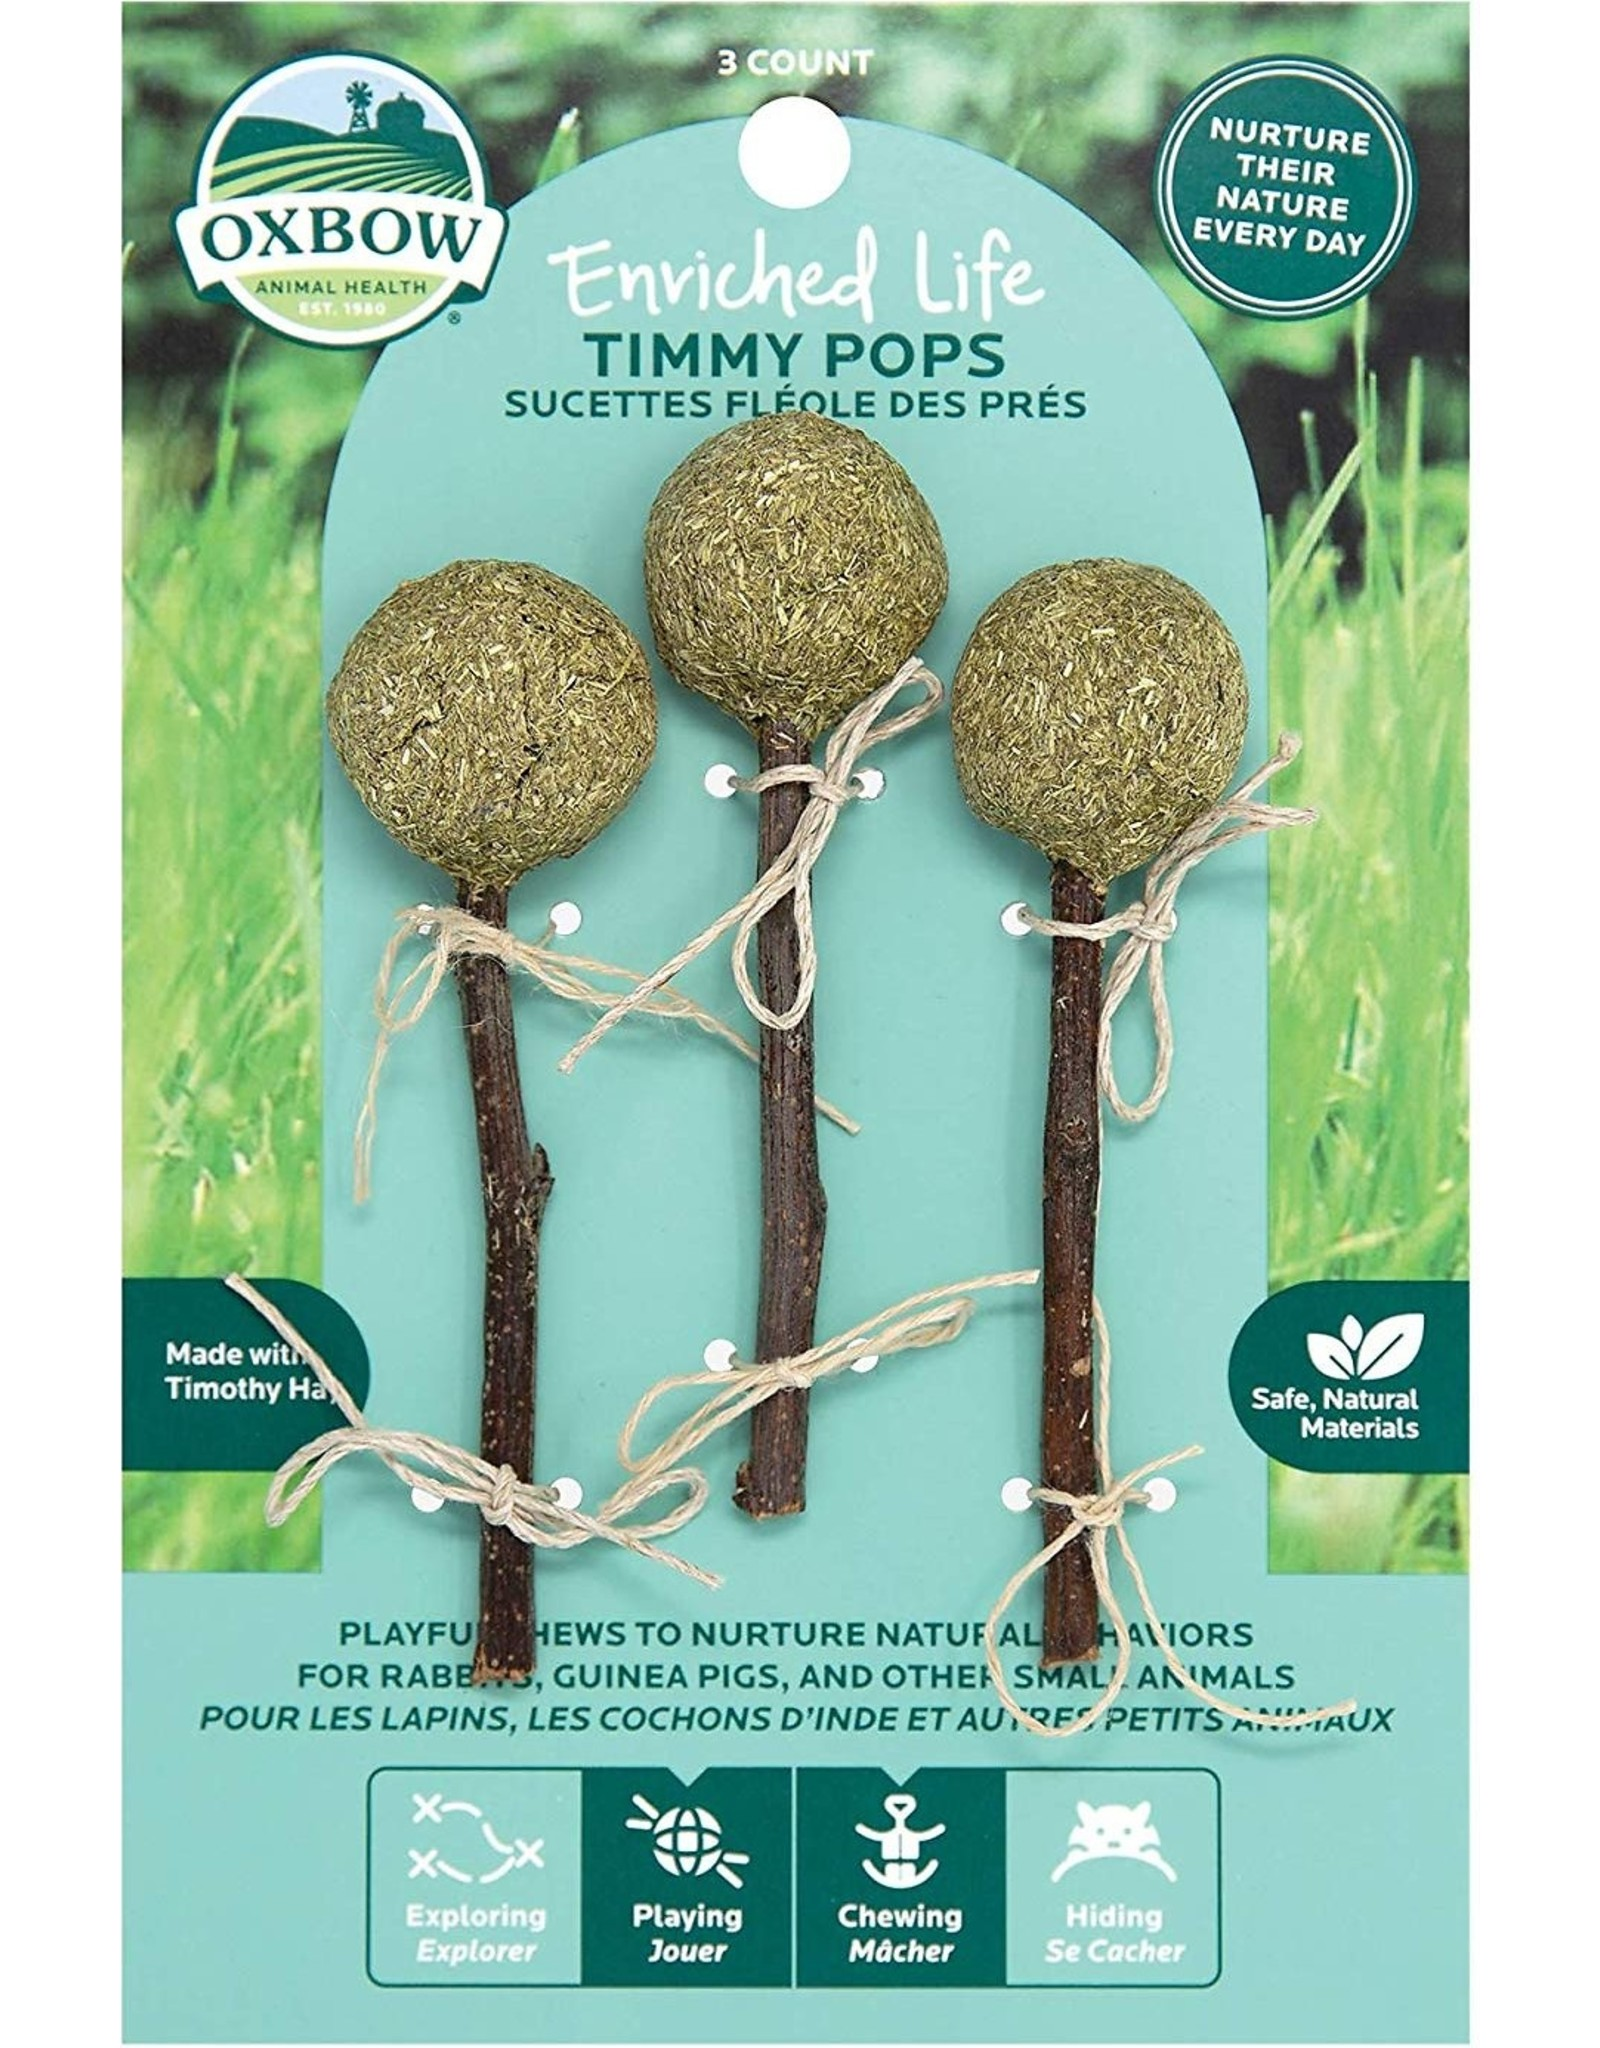 Oxbow Animal Health OXBOW ENRICHED LIFE TIMMY POPS SMALL ANIMAL CHEW TOY 3-COUNT